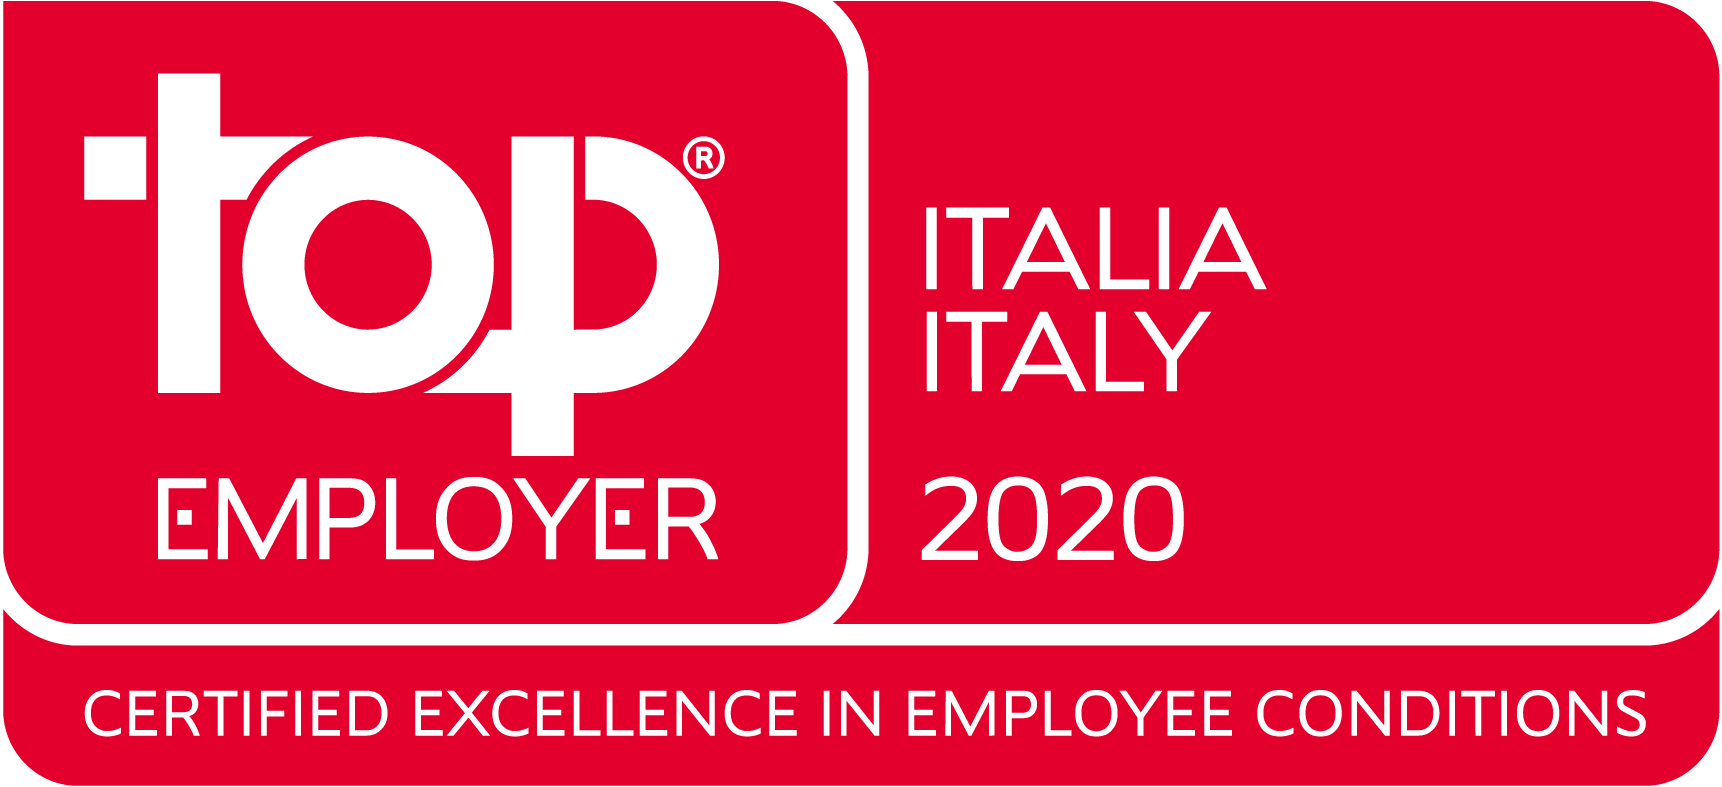 Top Employer Italy 2020